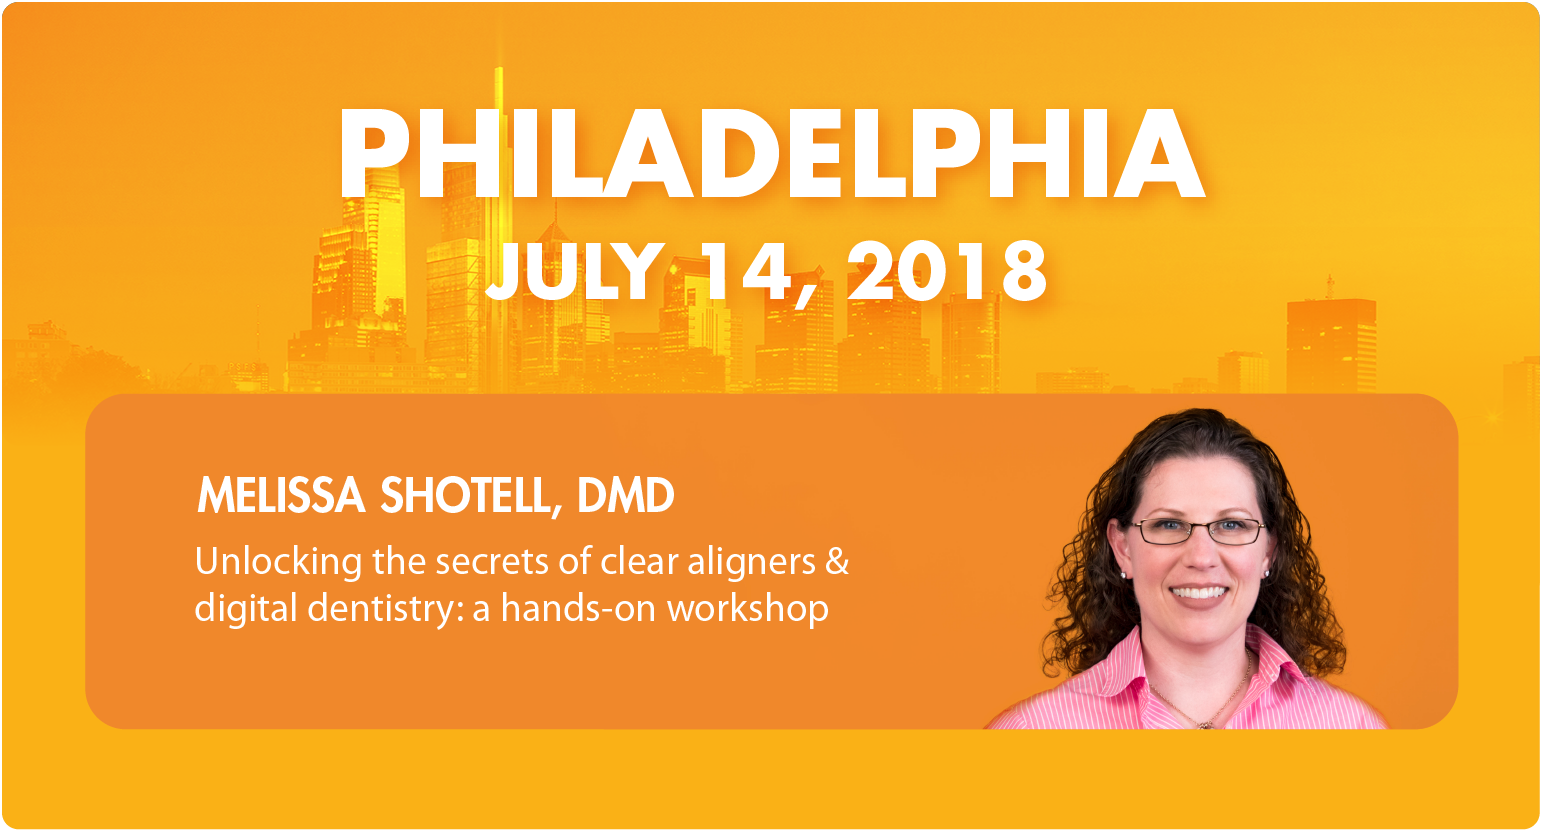 shotell philly image